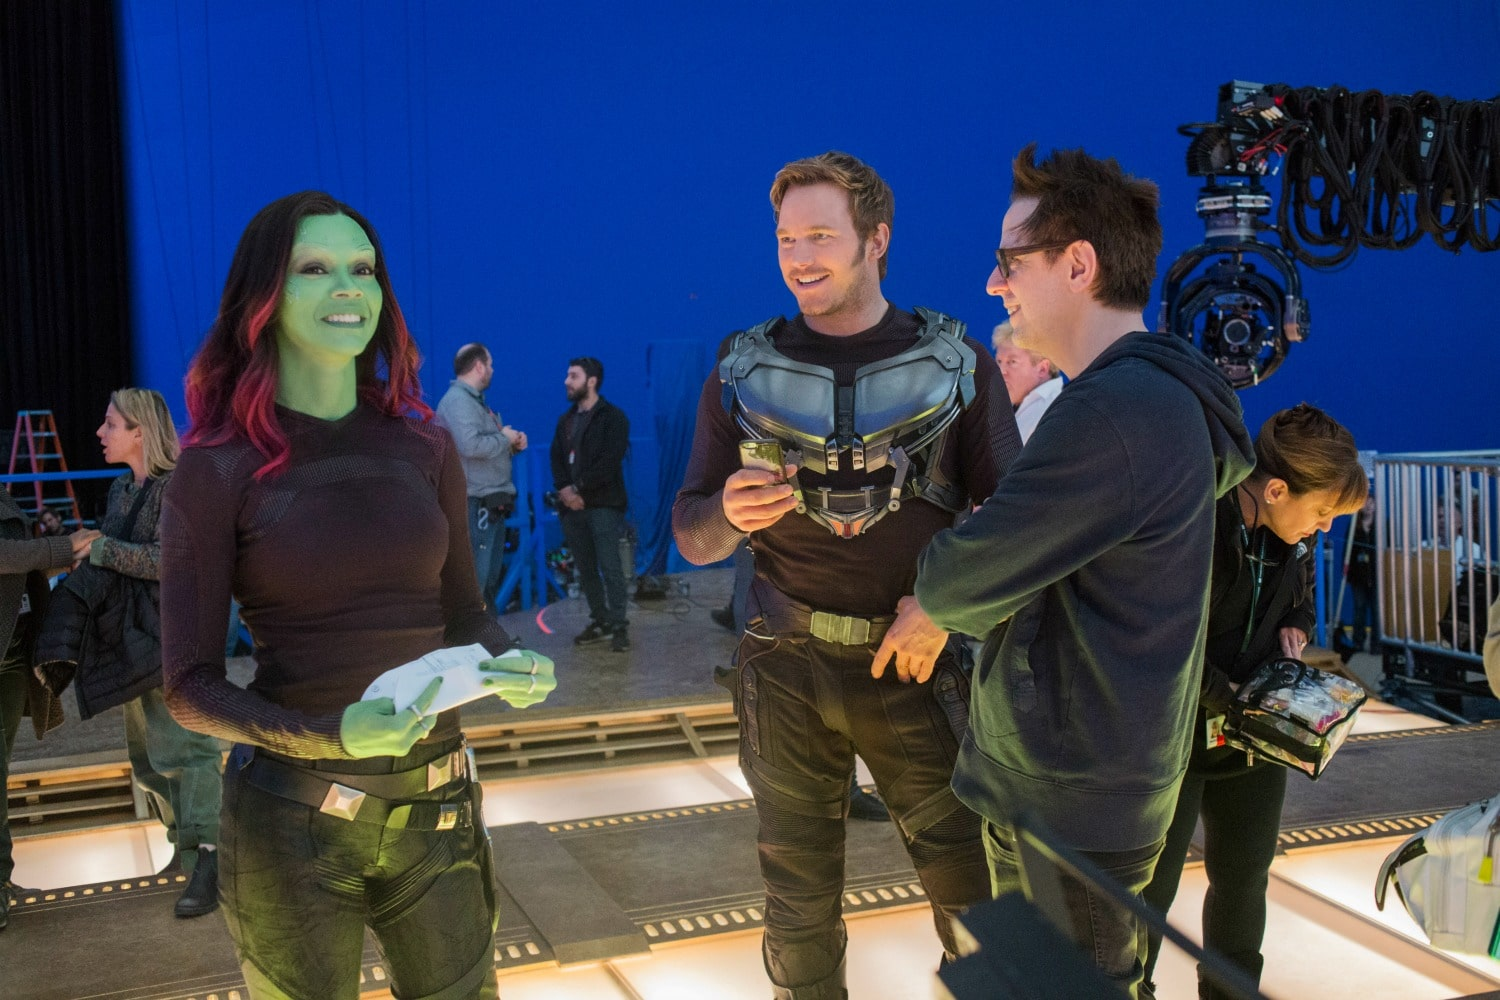 zoe chris and james behind the scenes